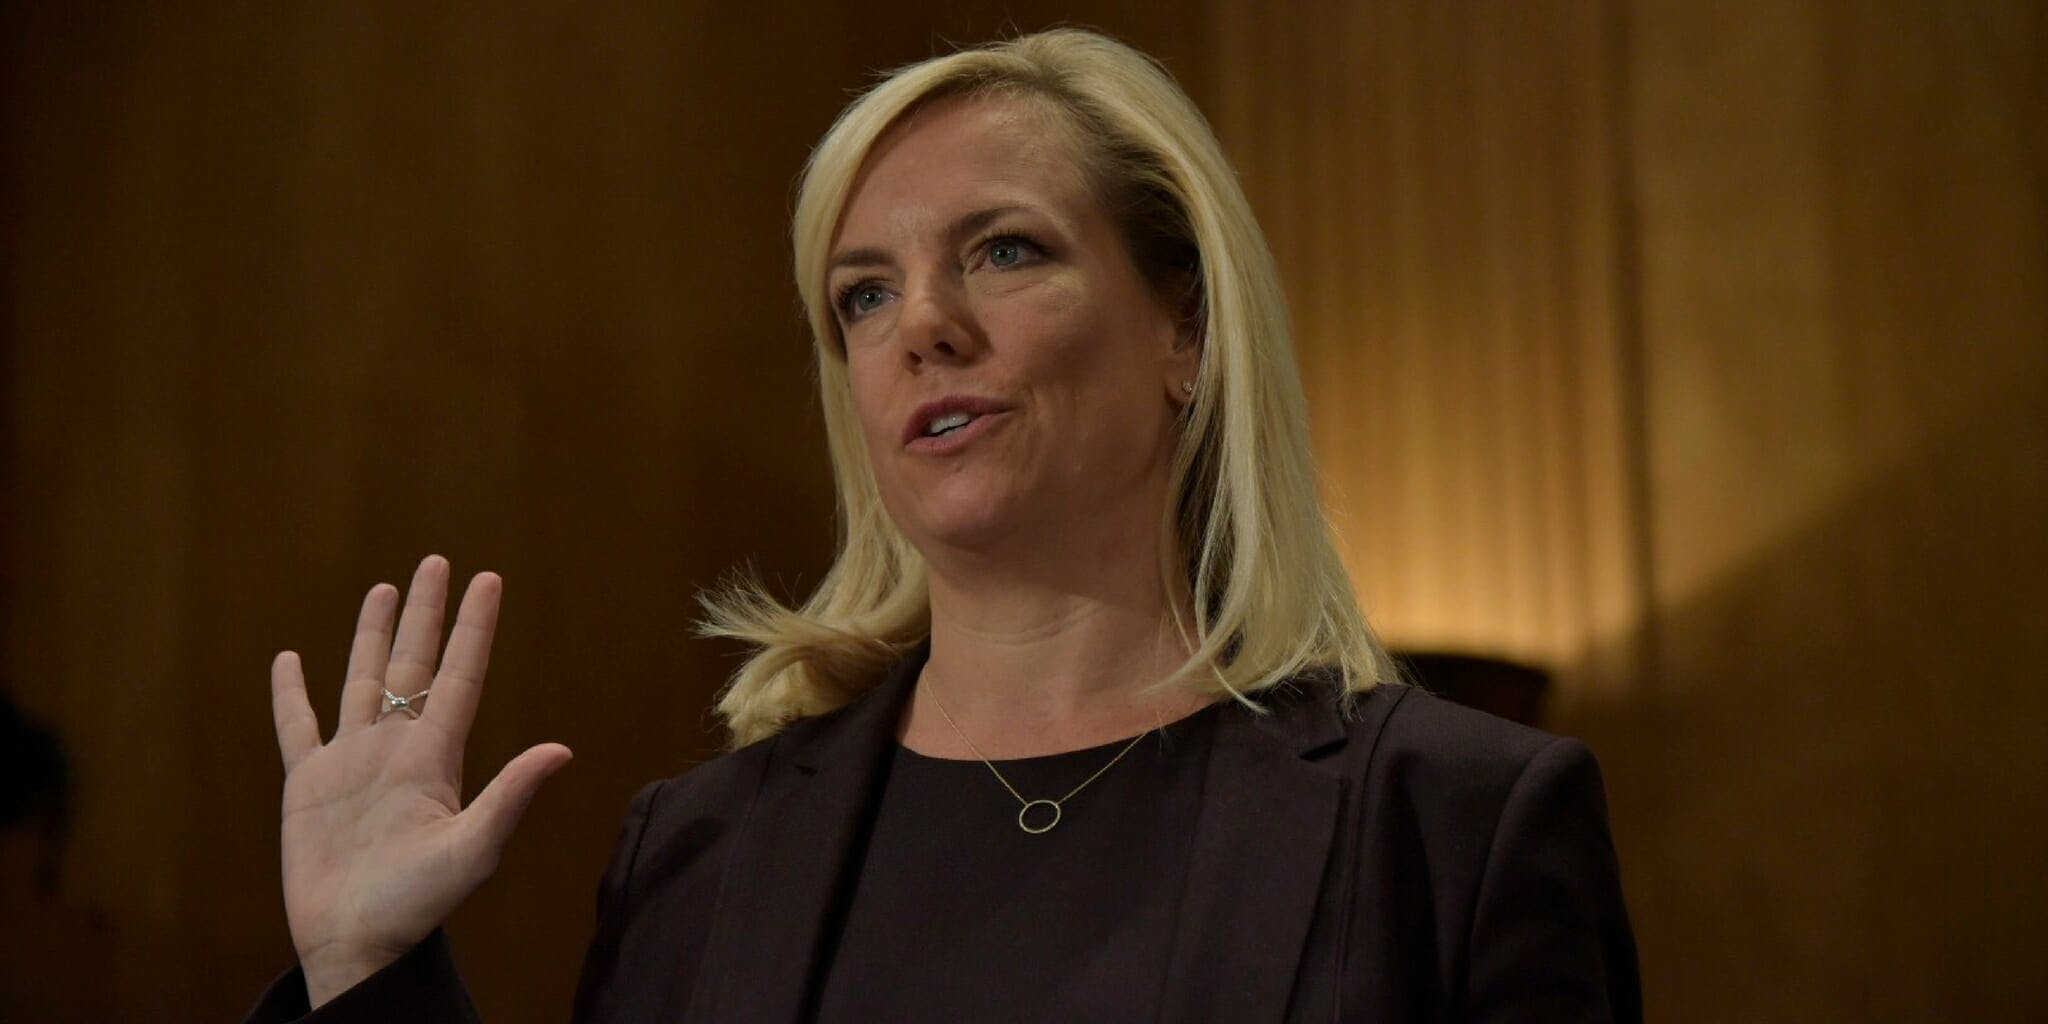 Kirstjen Nielsen is sworn in at a hearing on her nomination to become the Secretary of the Department of Homeland Security.